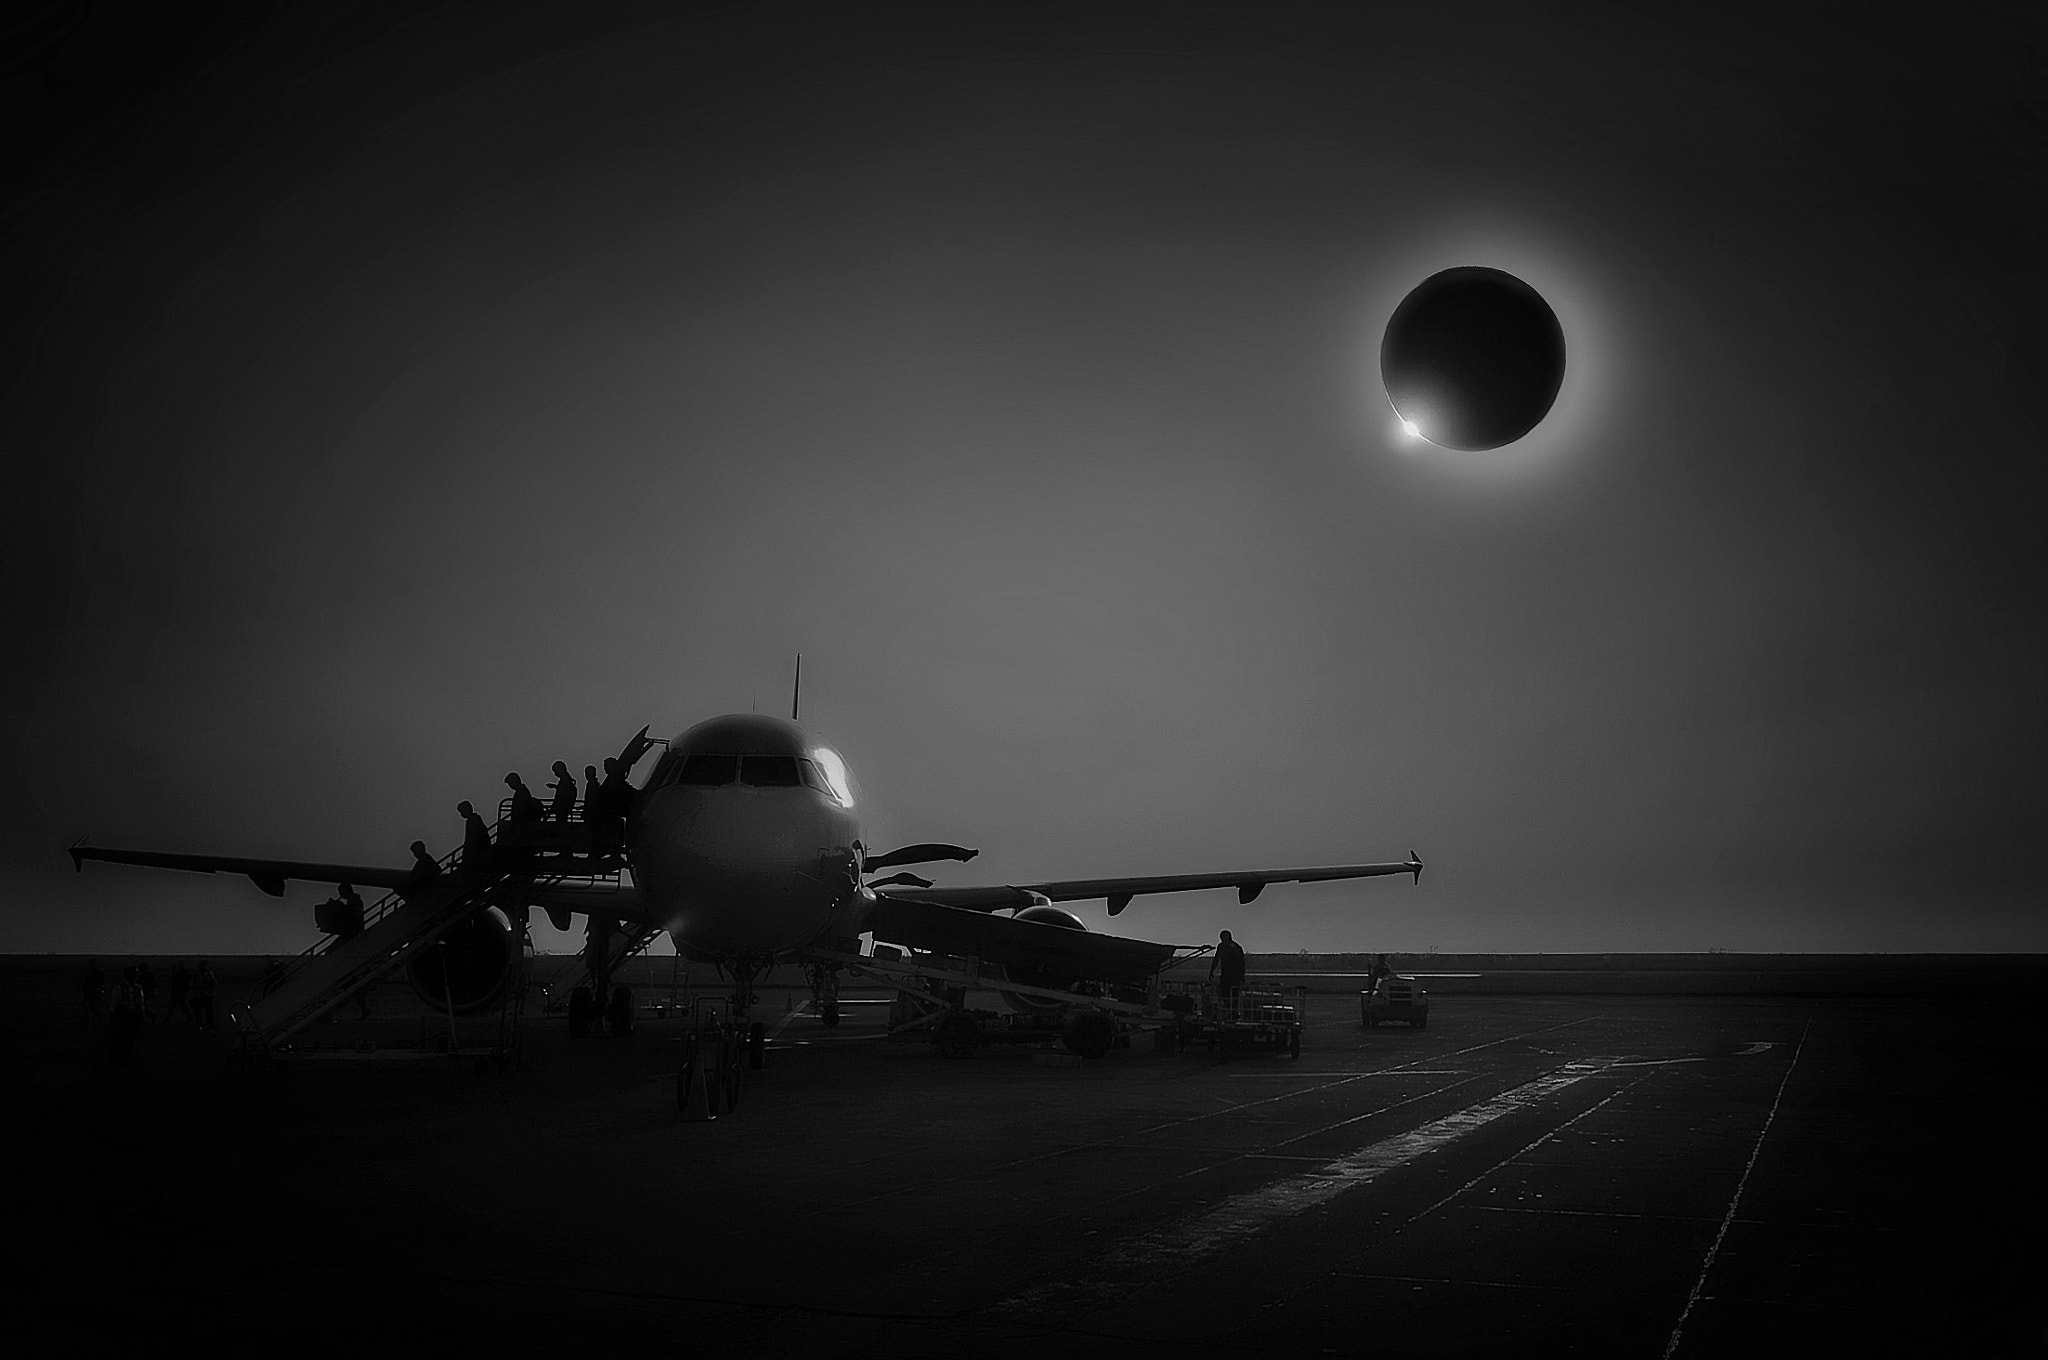 Photograph Temporary darkness by Vey Telmo on 500px